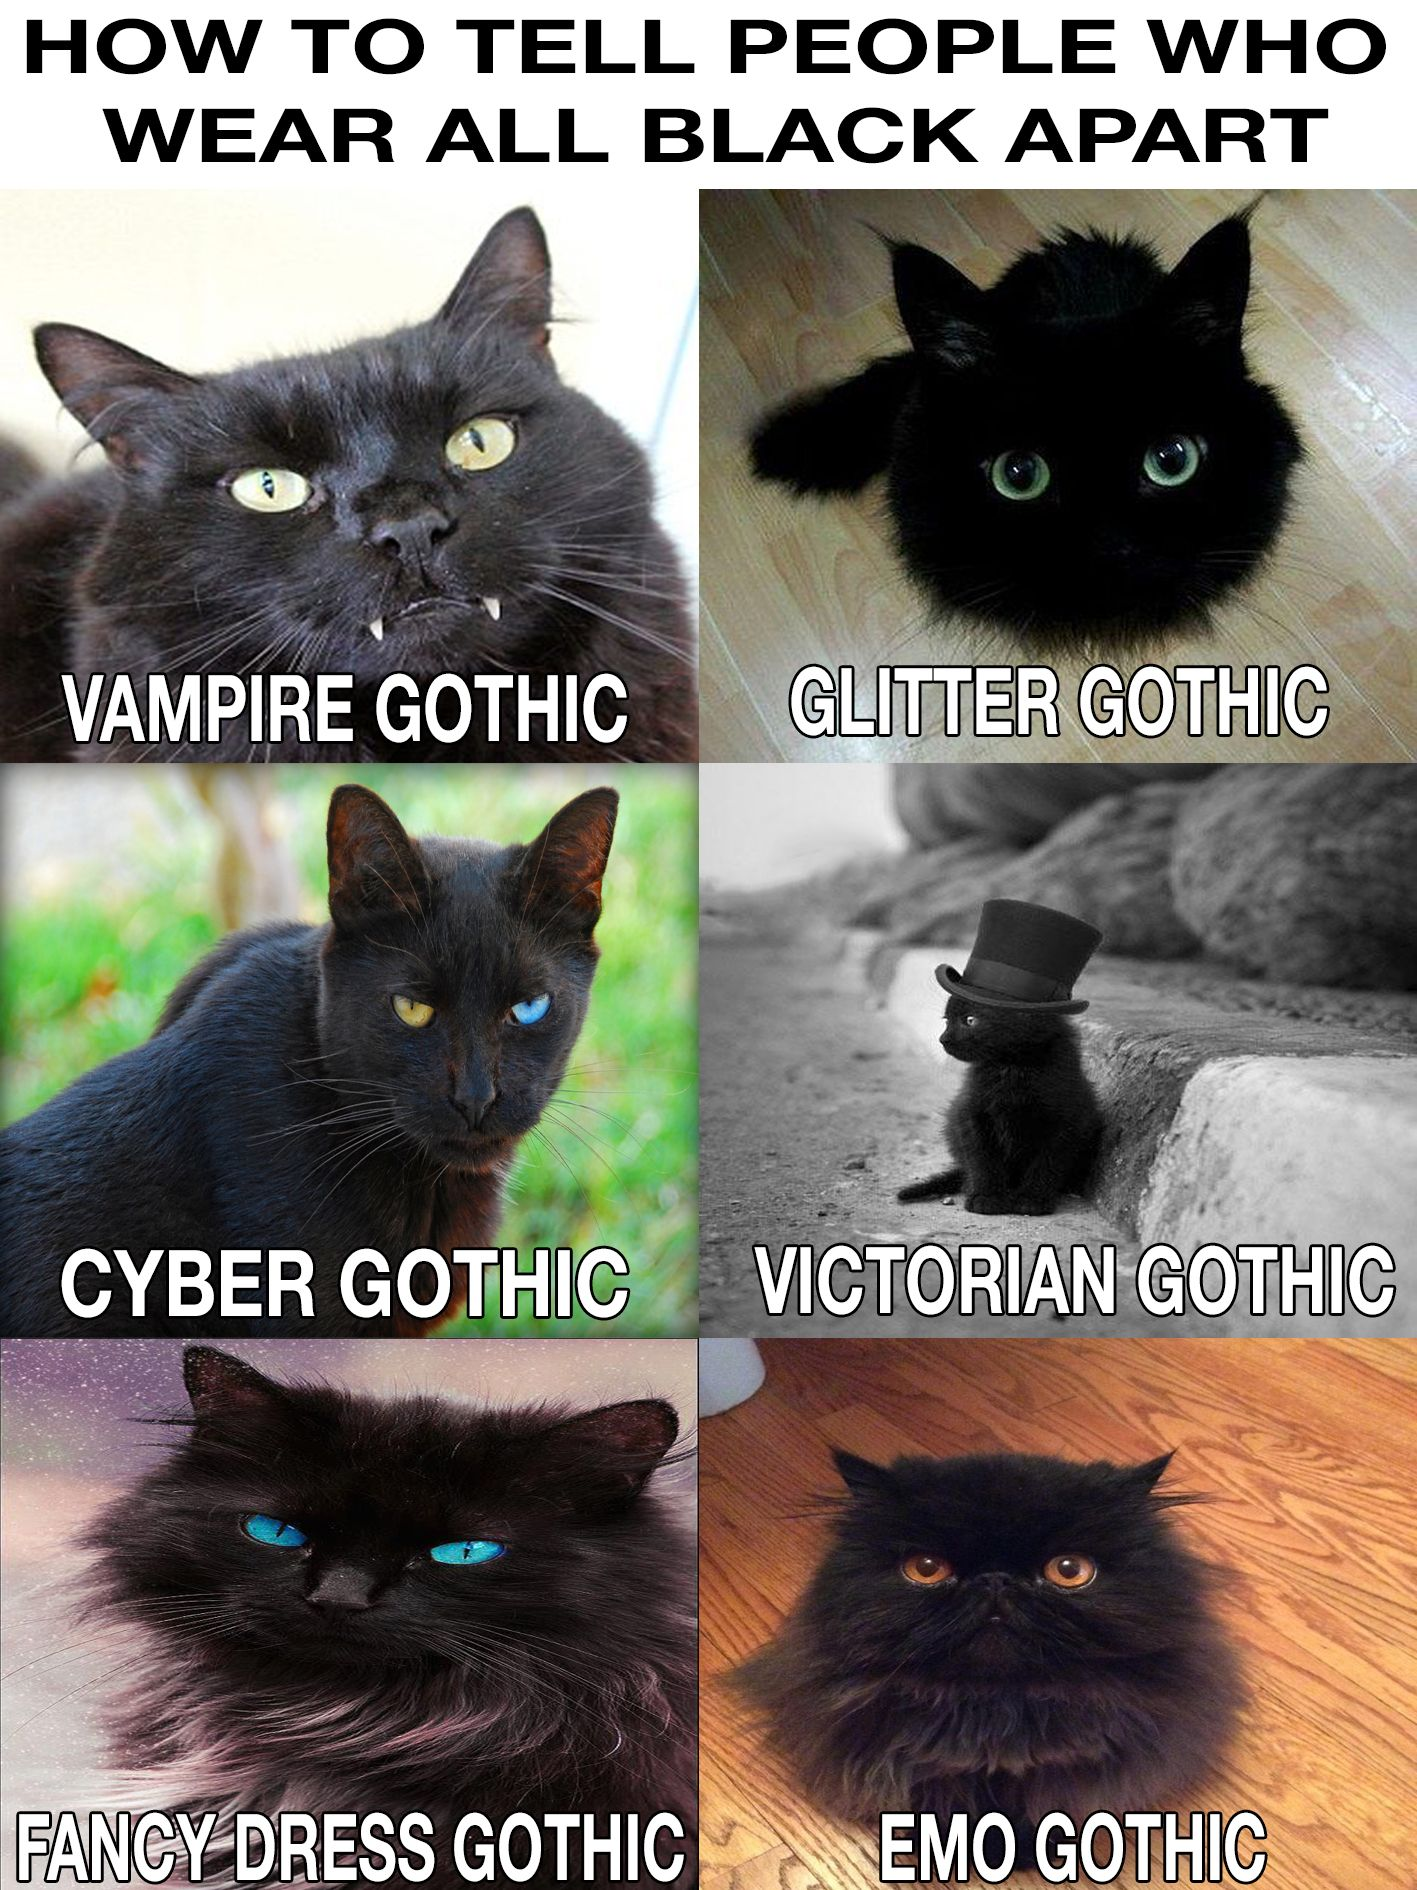 Black cats; come visiting my board to meet much more! You